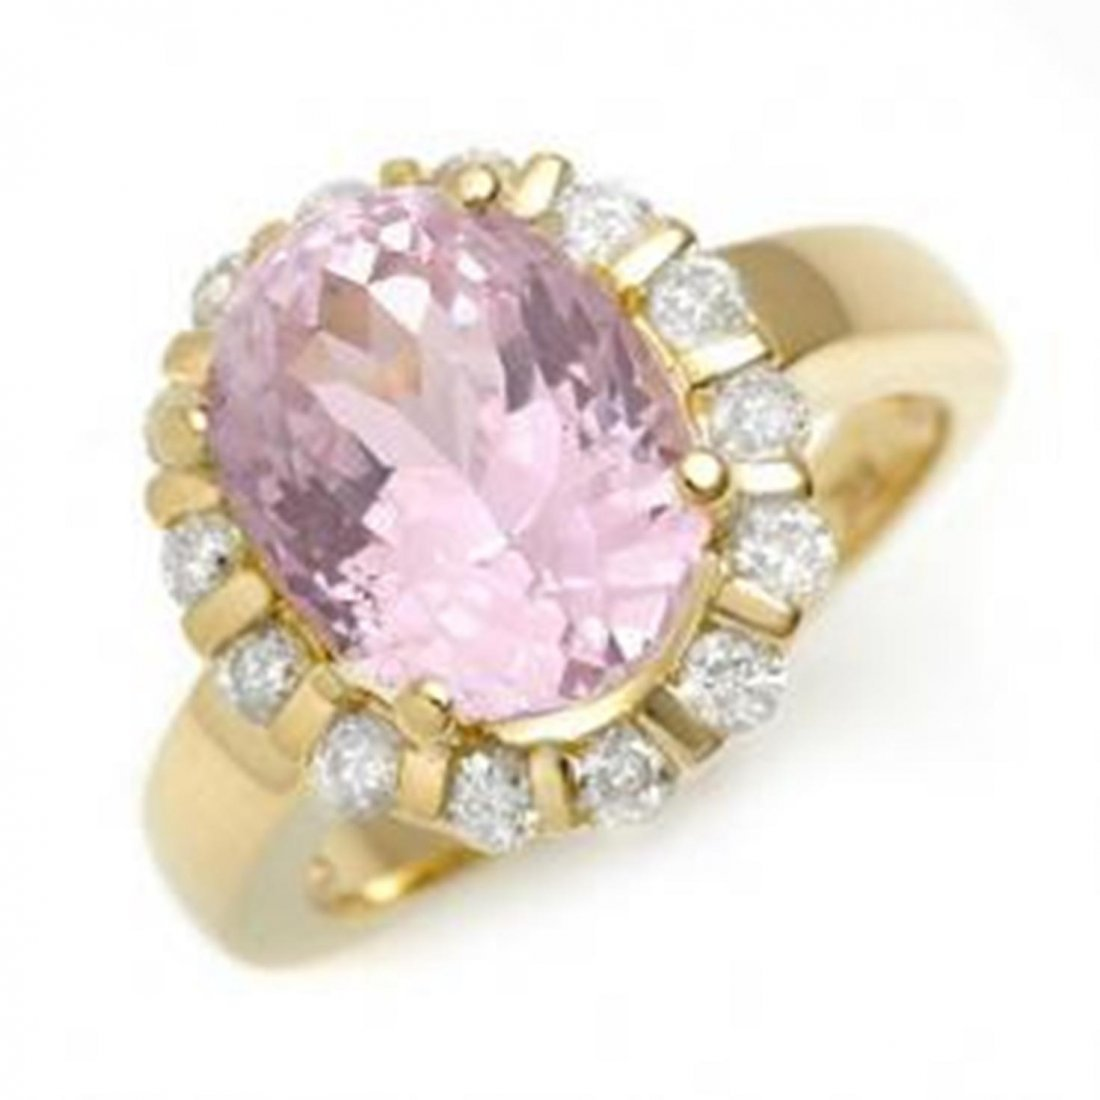 13W: 7.65 ctw Kunzite & Diamond Ring 10K